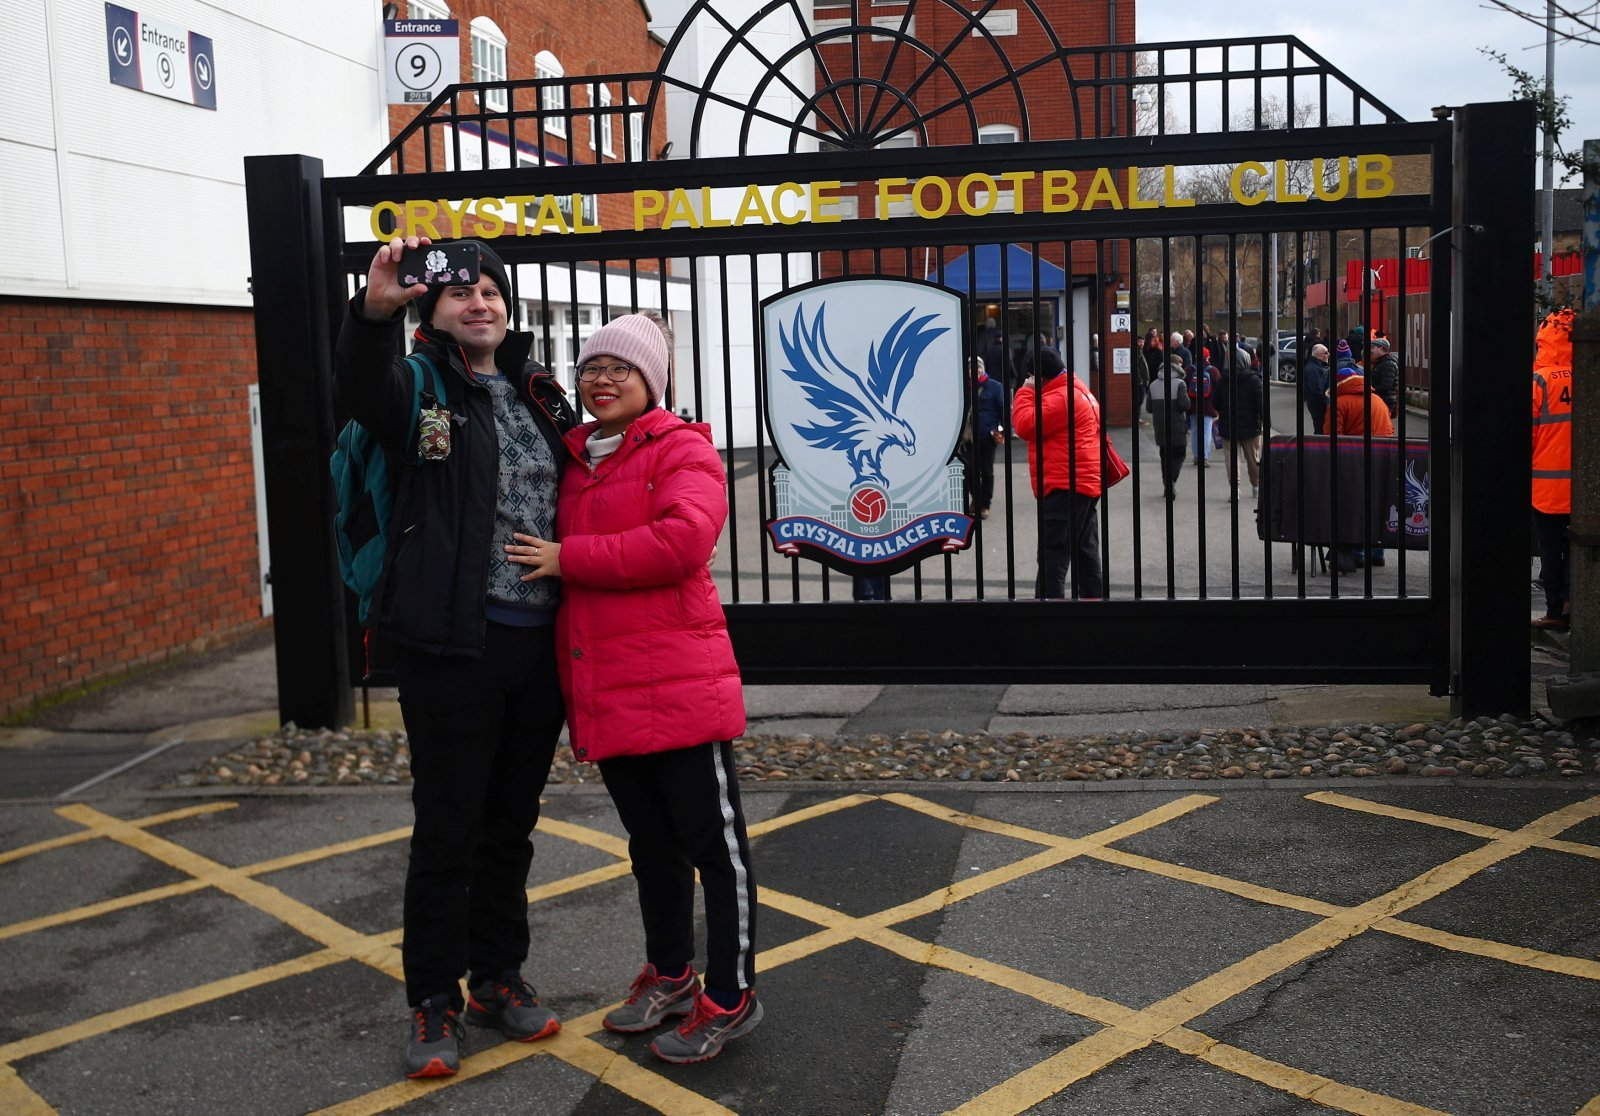 Crystal Palace: A house is not a home